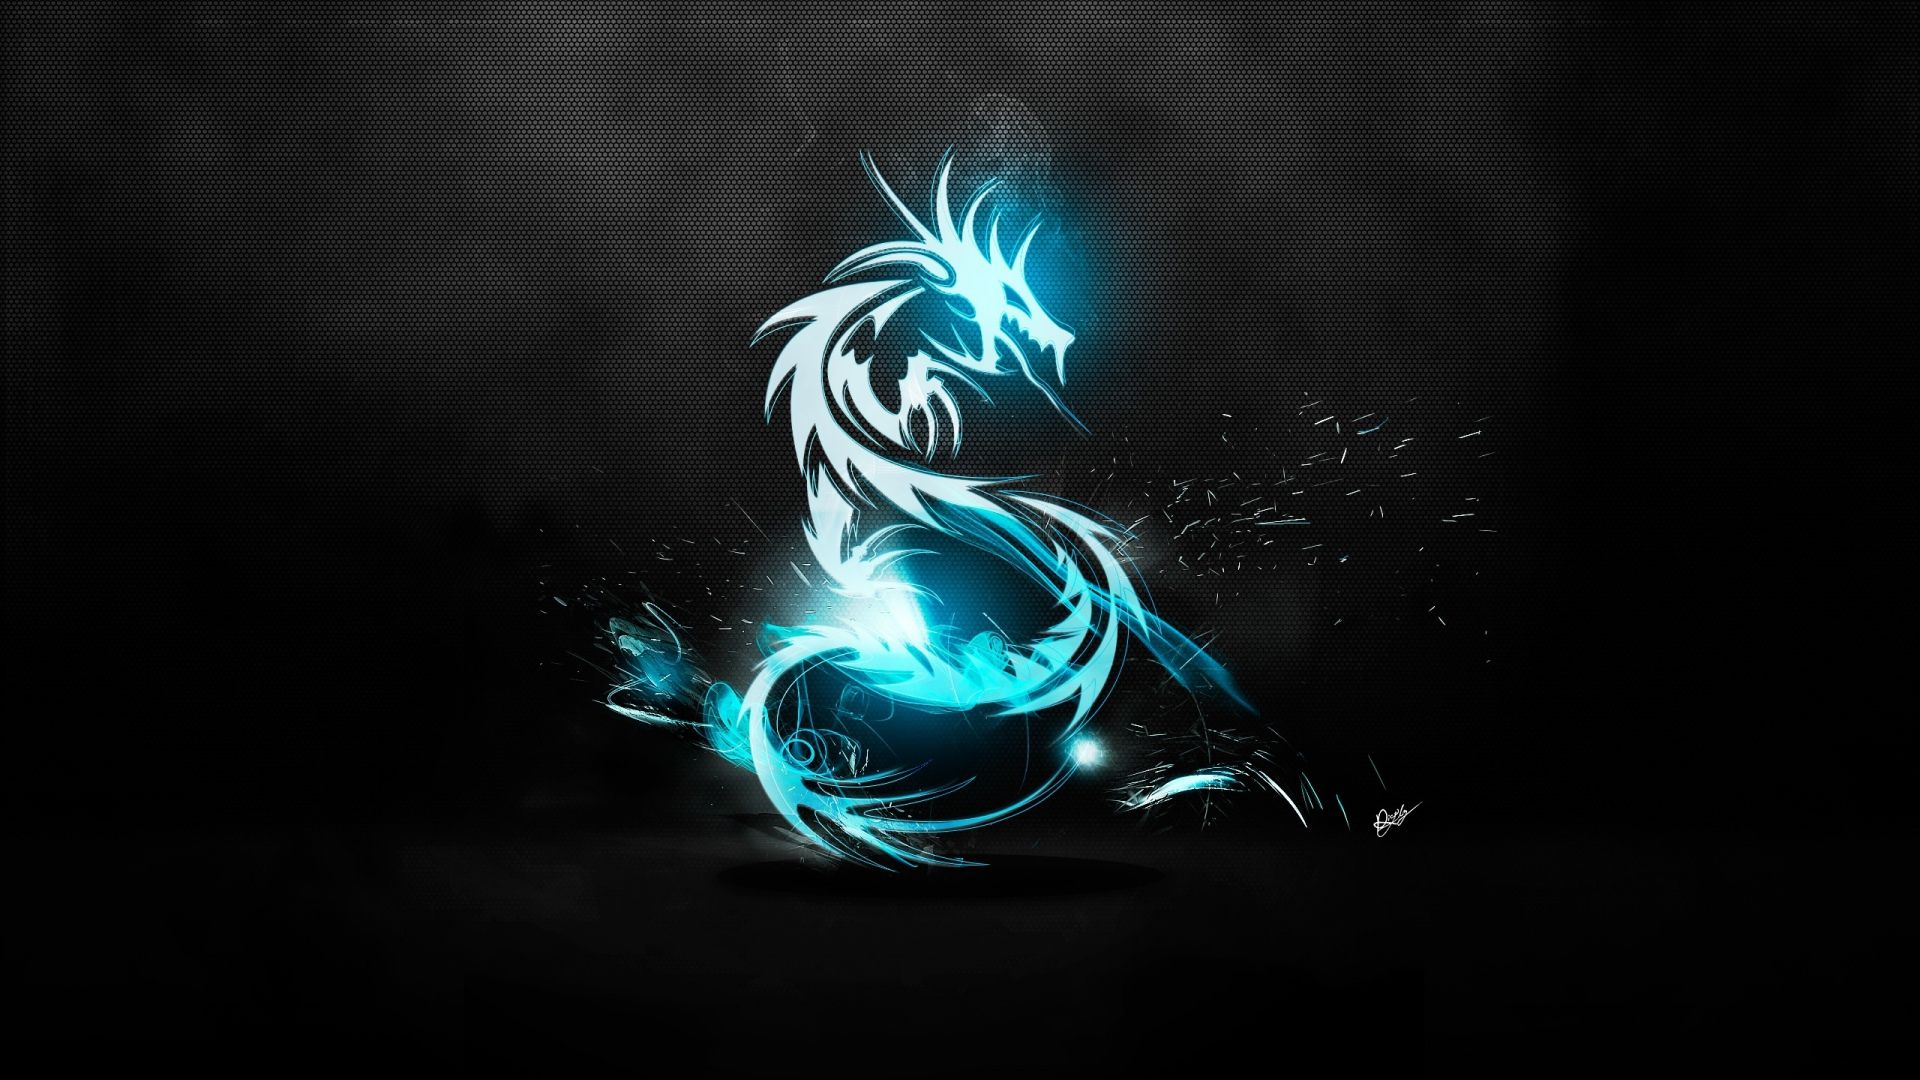 Wallpaper dragon spray symbol neon 1920x1080 Gambar naga